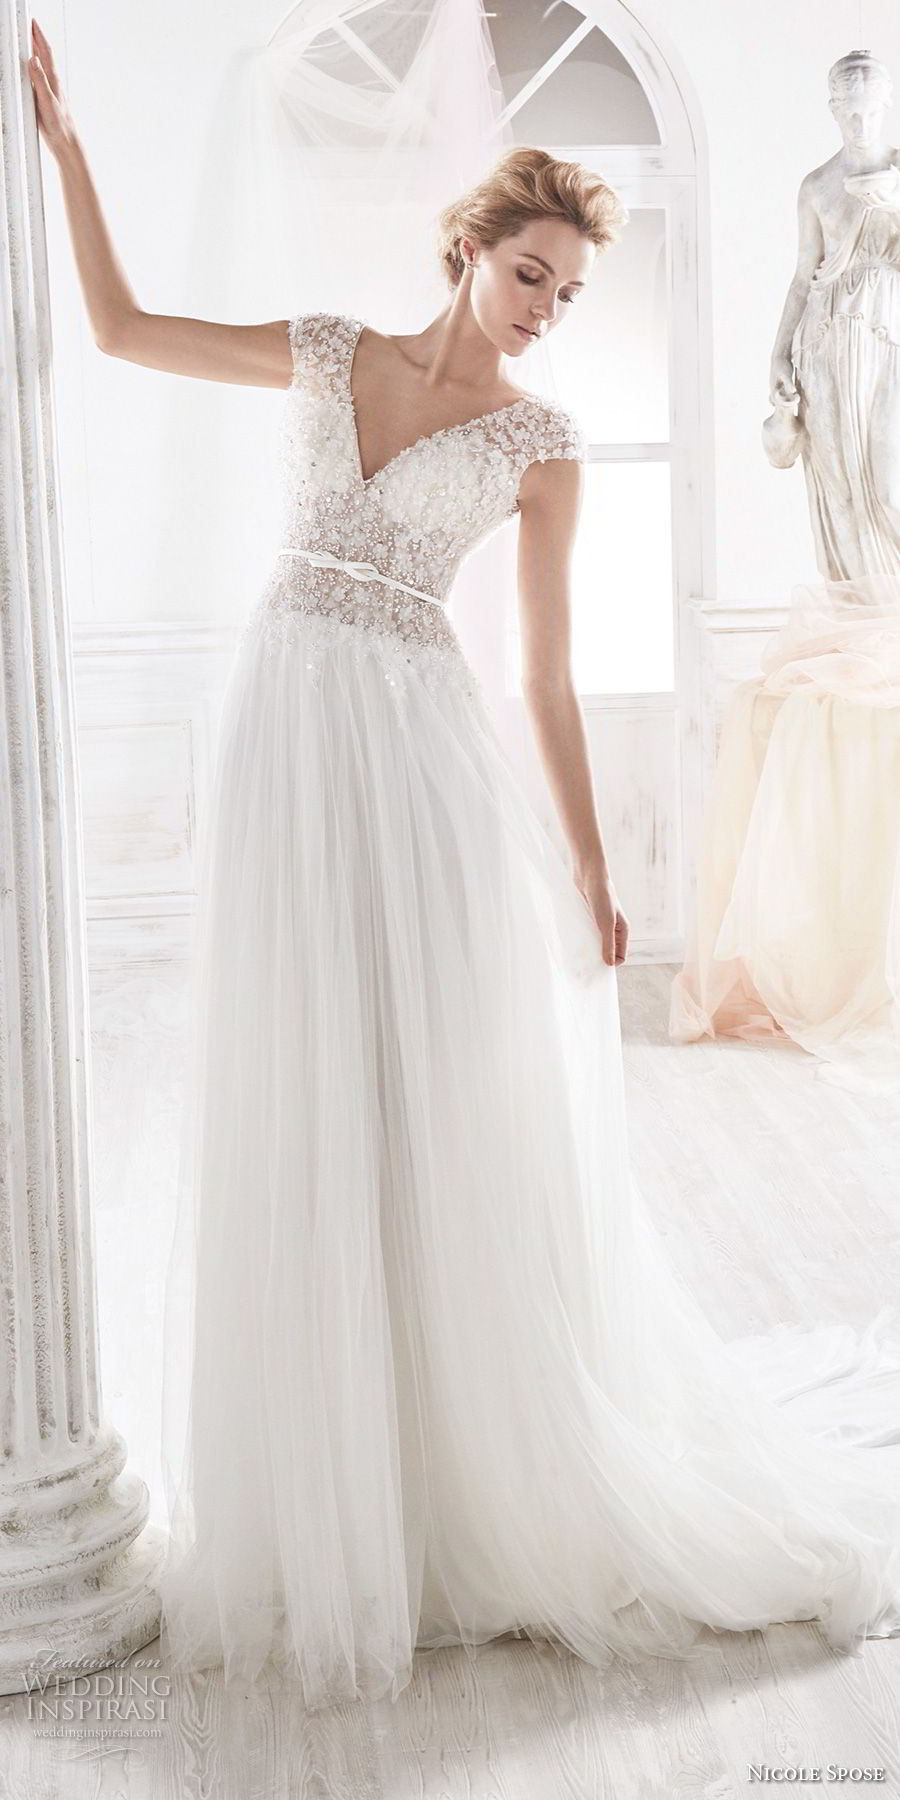 nicole spose 2018 bridal cap sleeves v neck heavily embellished bodice romantic soft a line wedding dress open v back chapel train (11) mv